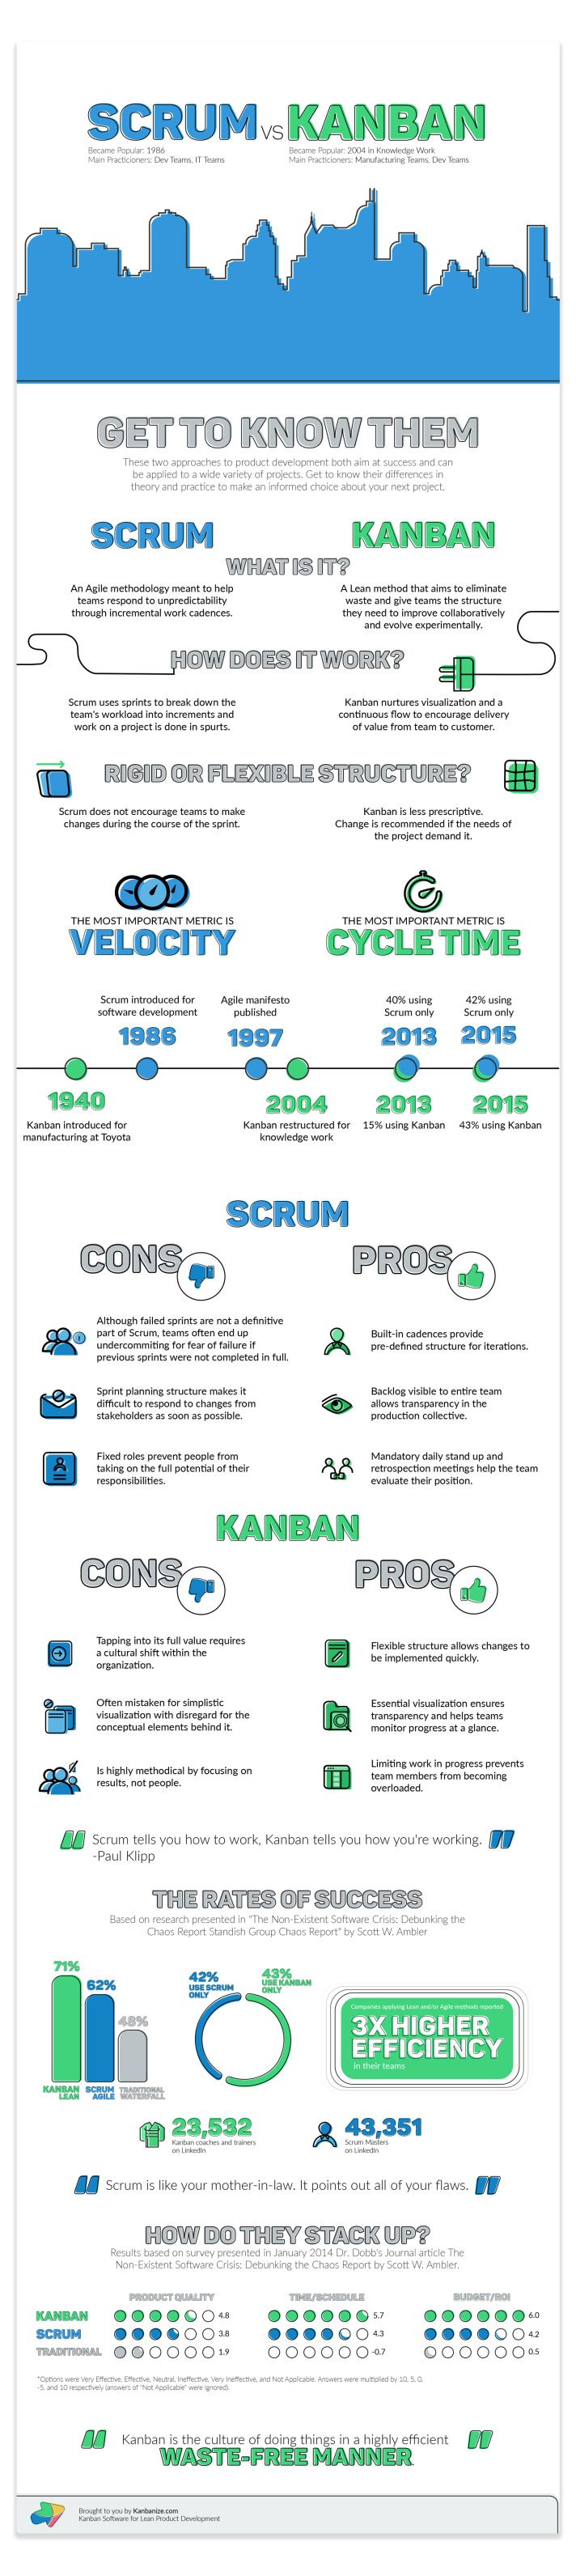 Comparison of the two most widely used Agile Project